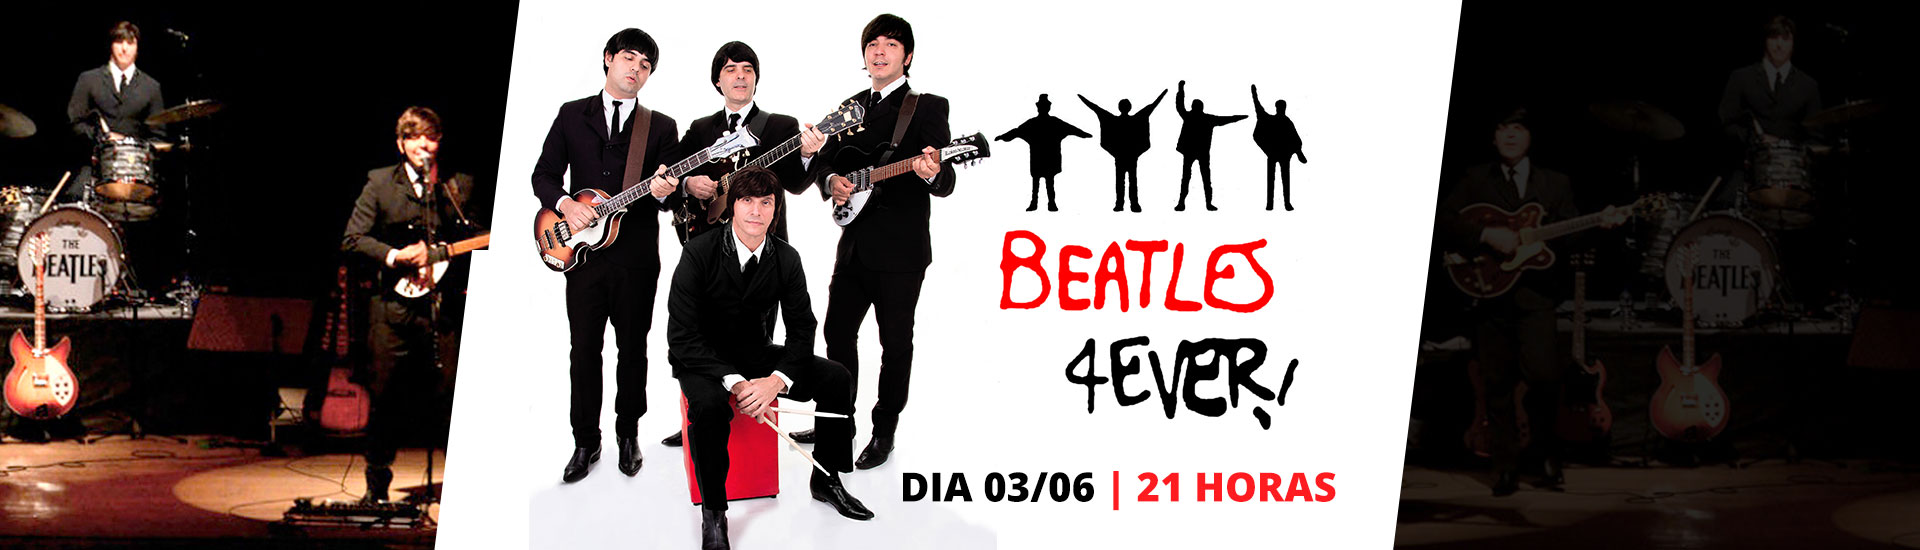 Beatles 4Ever